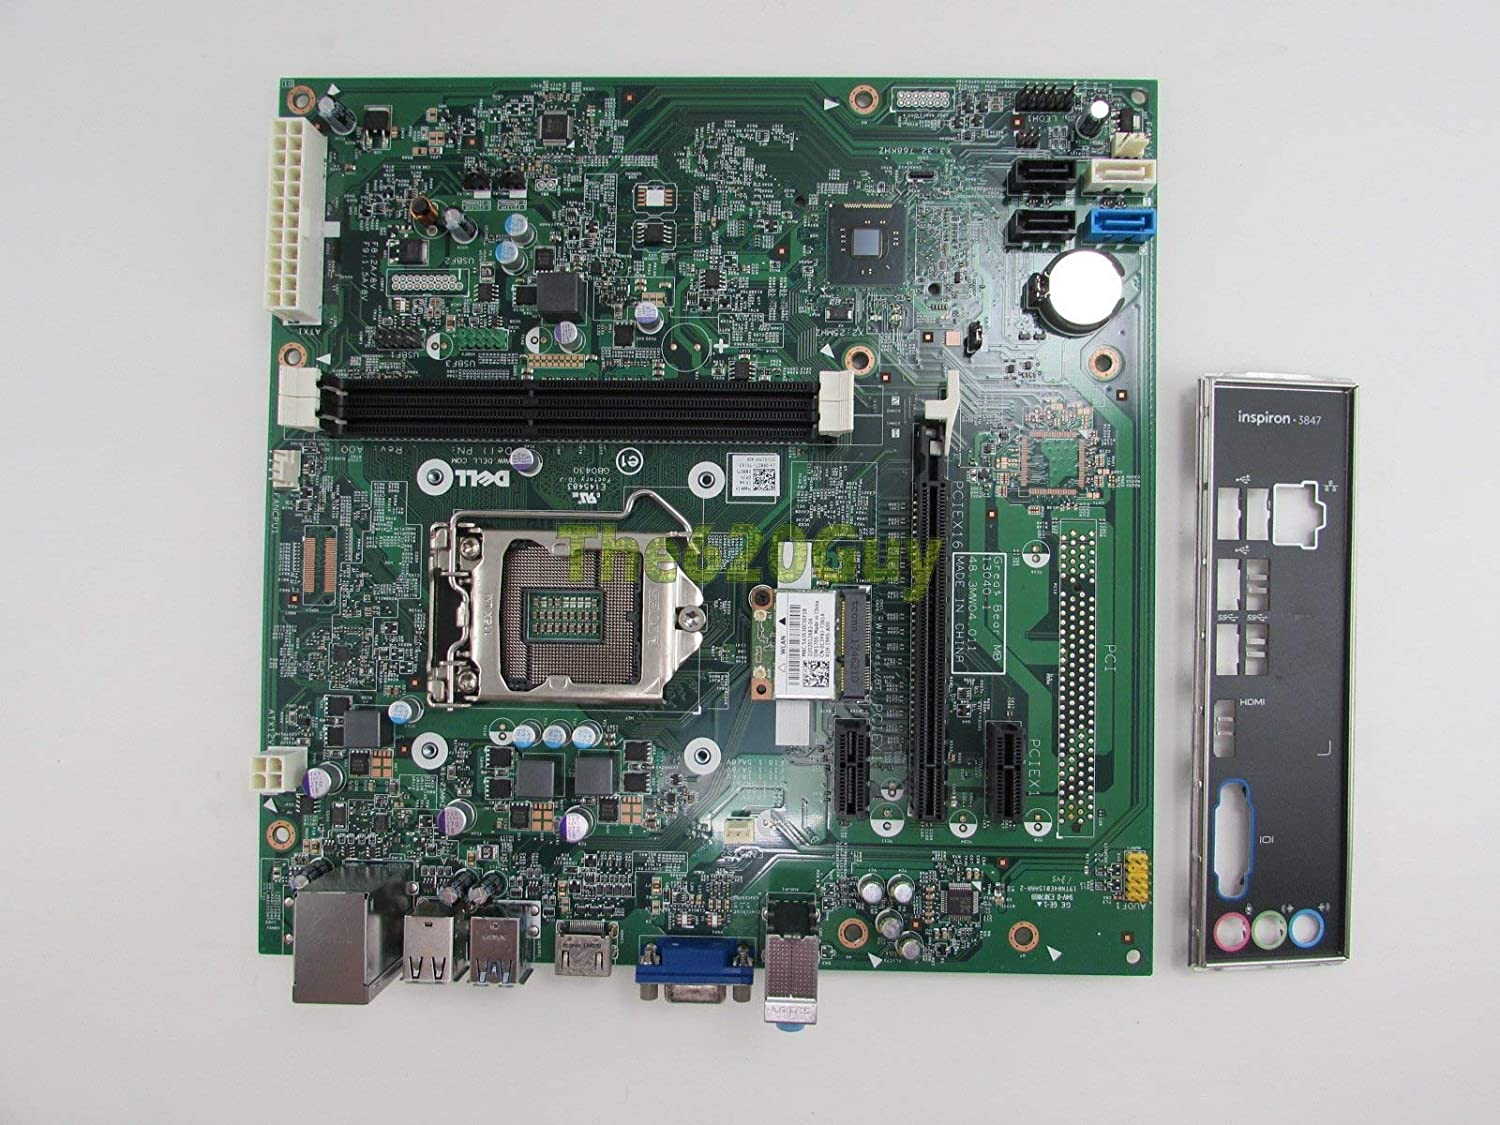 Dell Inspiron 3847 MT Socket LGA 1150 Motherboard 88DT1 088DT1 + I/O + WLAN Card (Renewed)